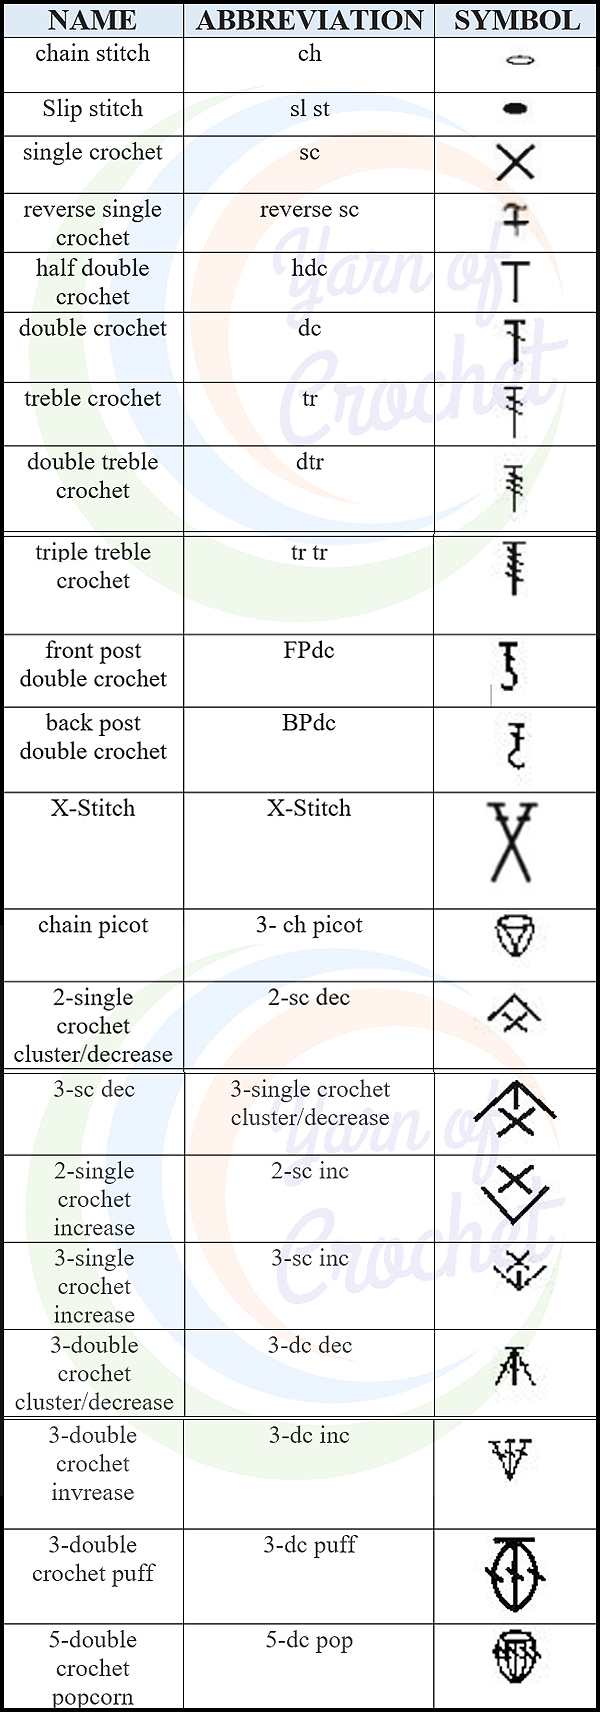 See a complete table with the most commonly used crochet stitches with abbreviations and symbols to follow graphs and grade patterns yarn of crochet in freecrochetfashion biocorpaavc